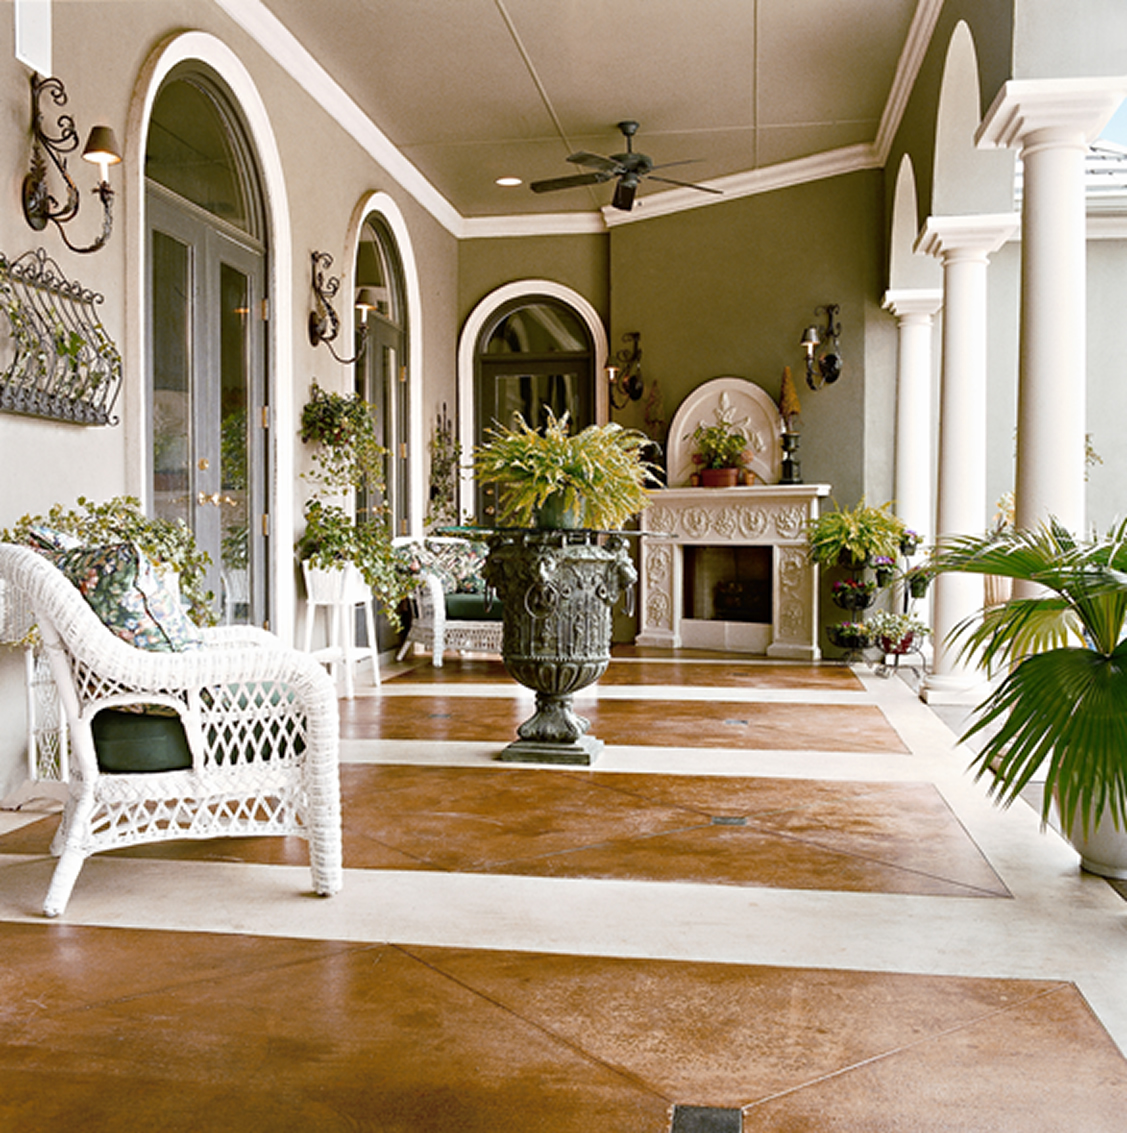 Gorgeous Outdoor Patio Design With Painted Concrete Flooring And White  Chairs And Arched Doors And Potted